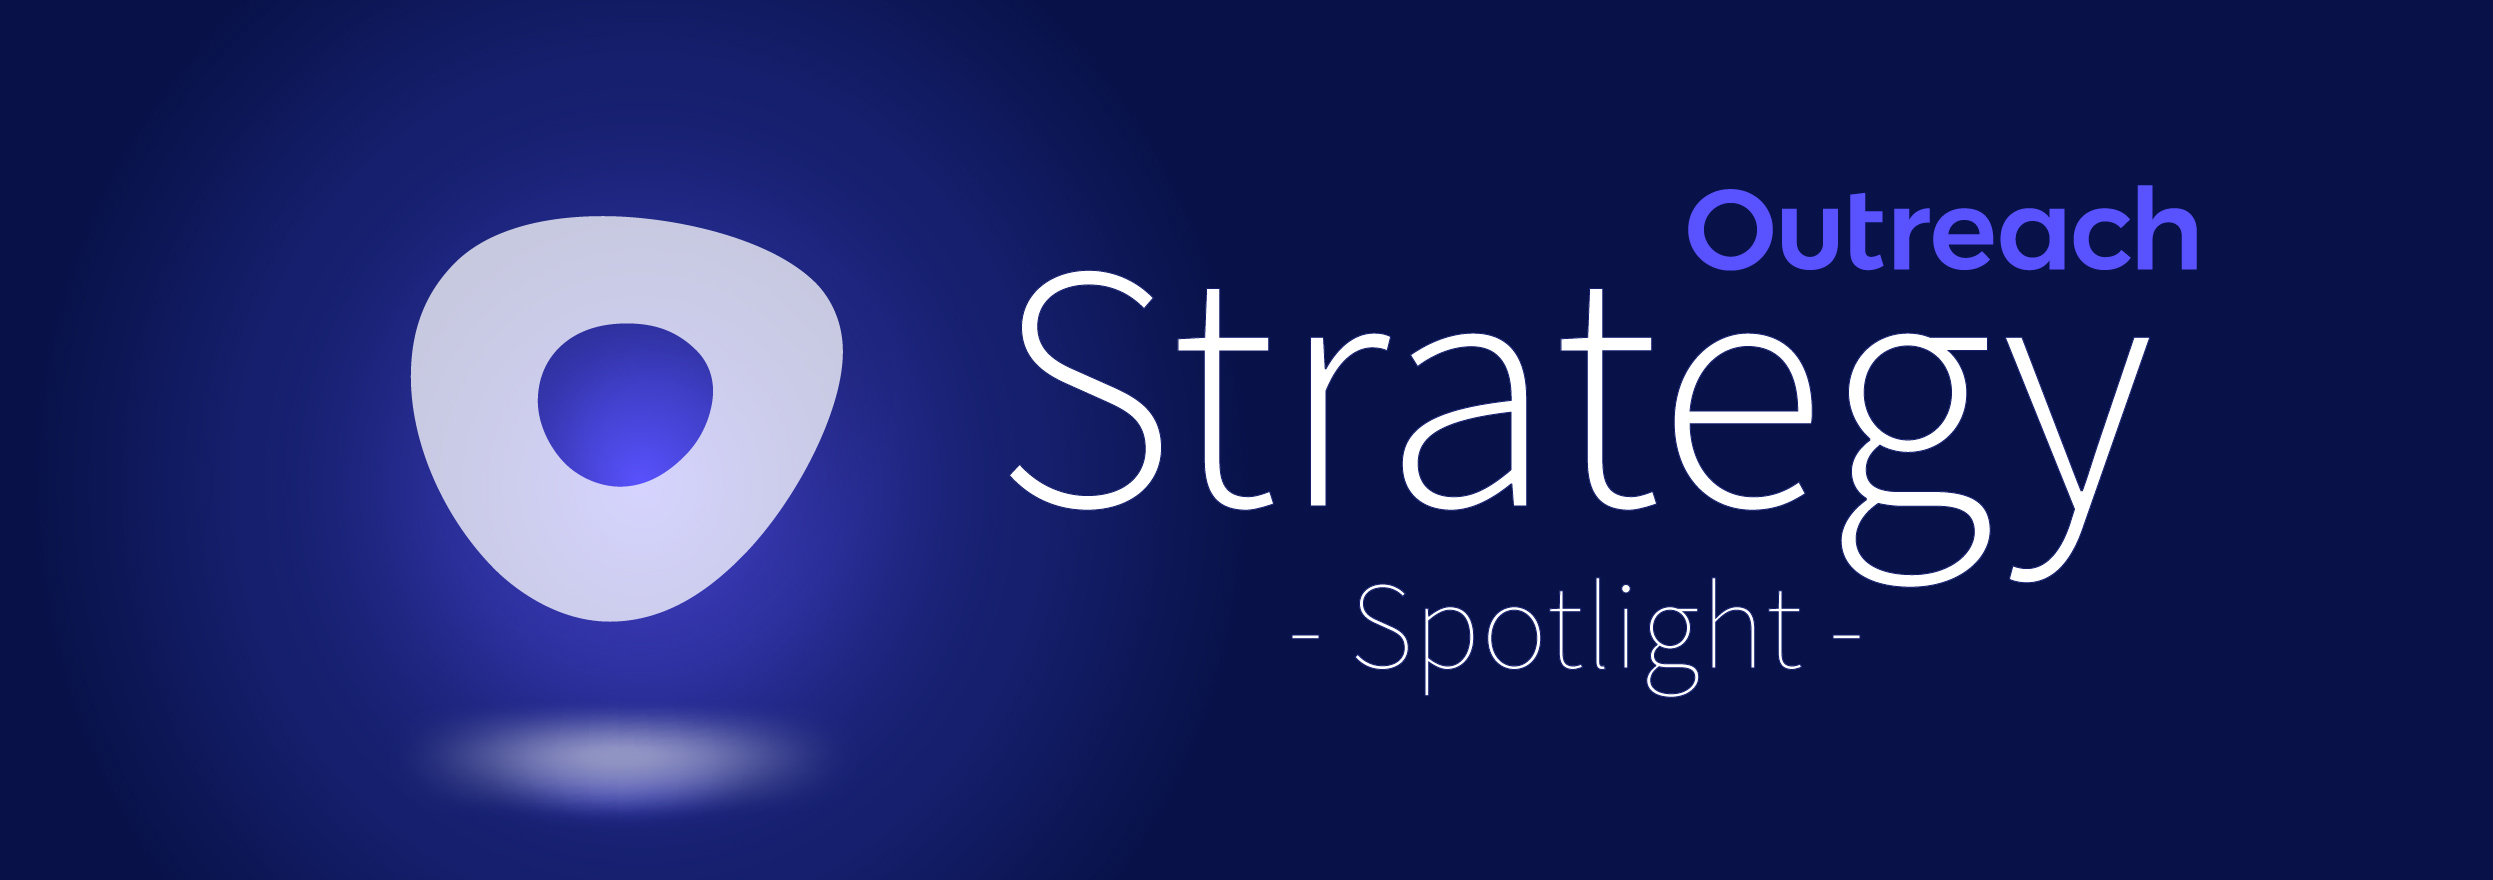 Strategy-Spotlight-01.jpg